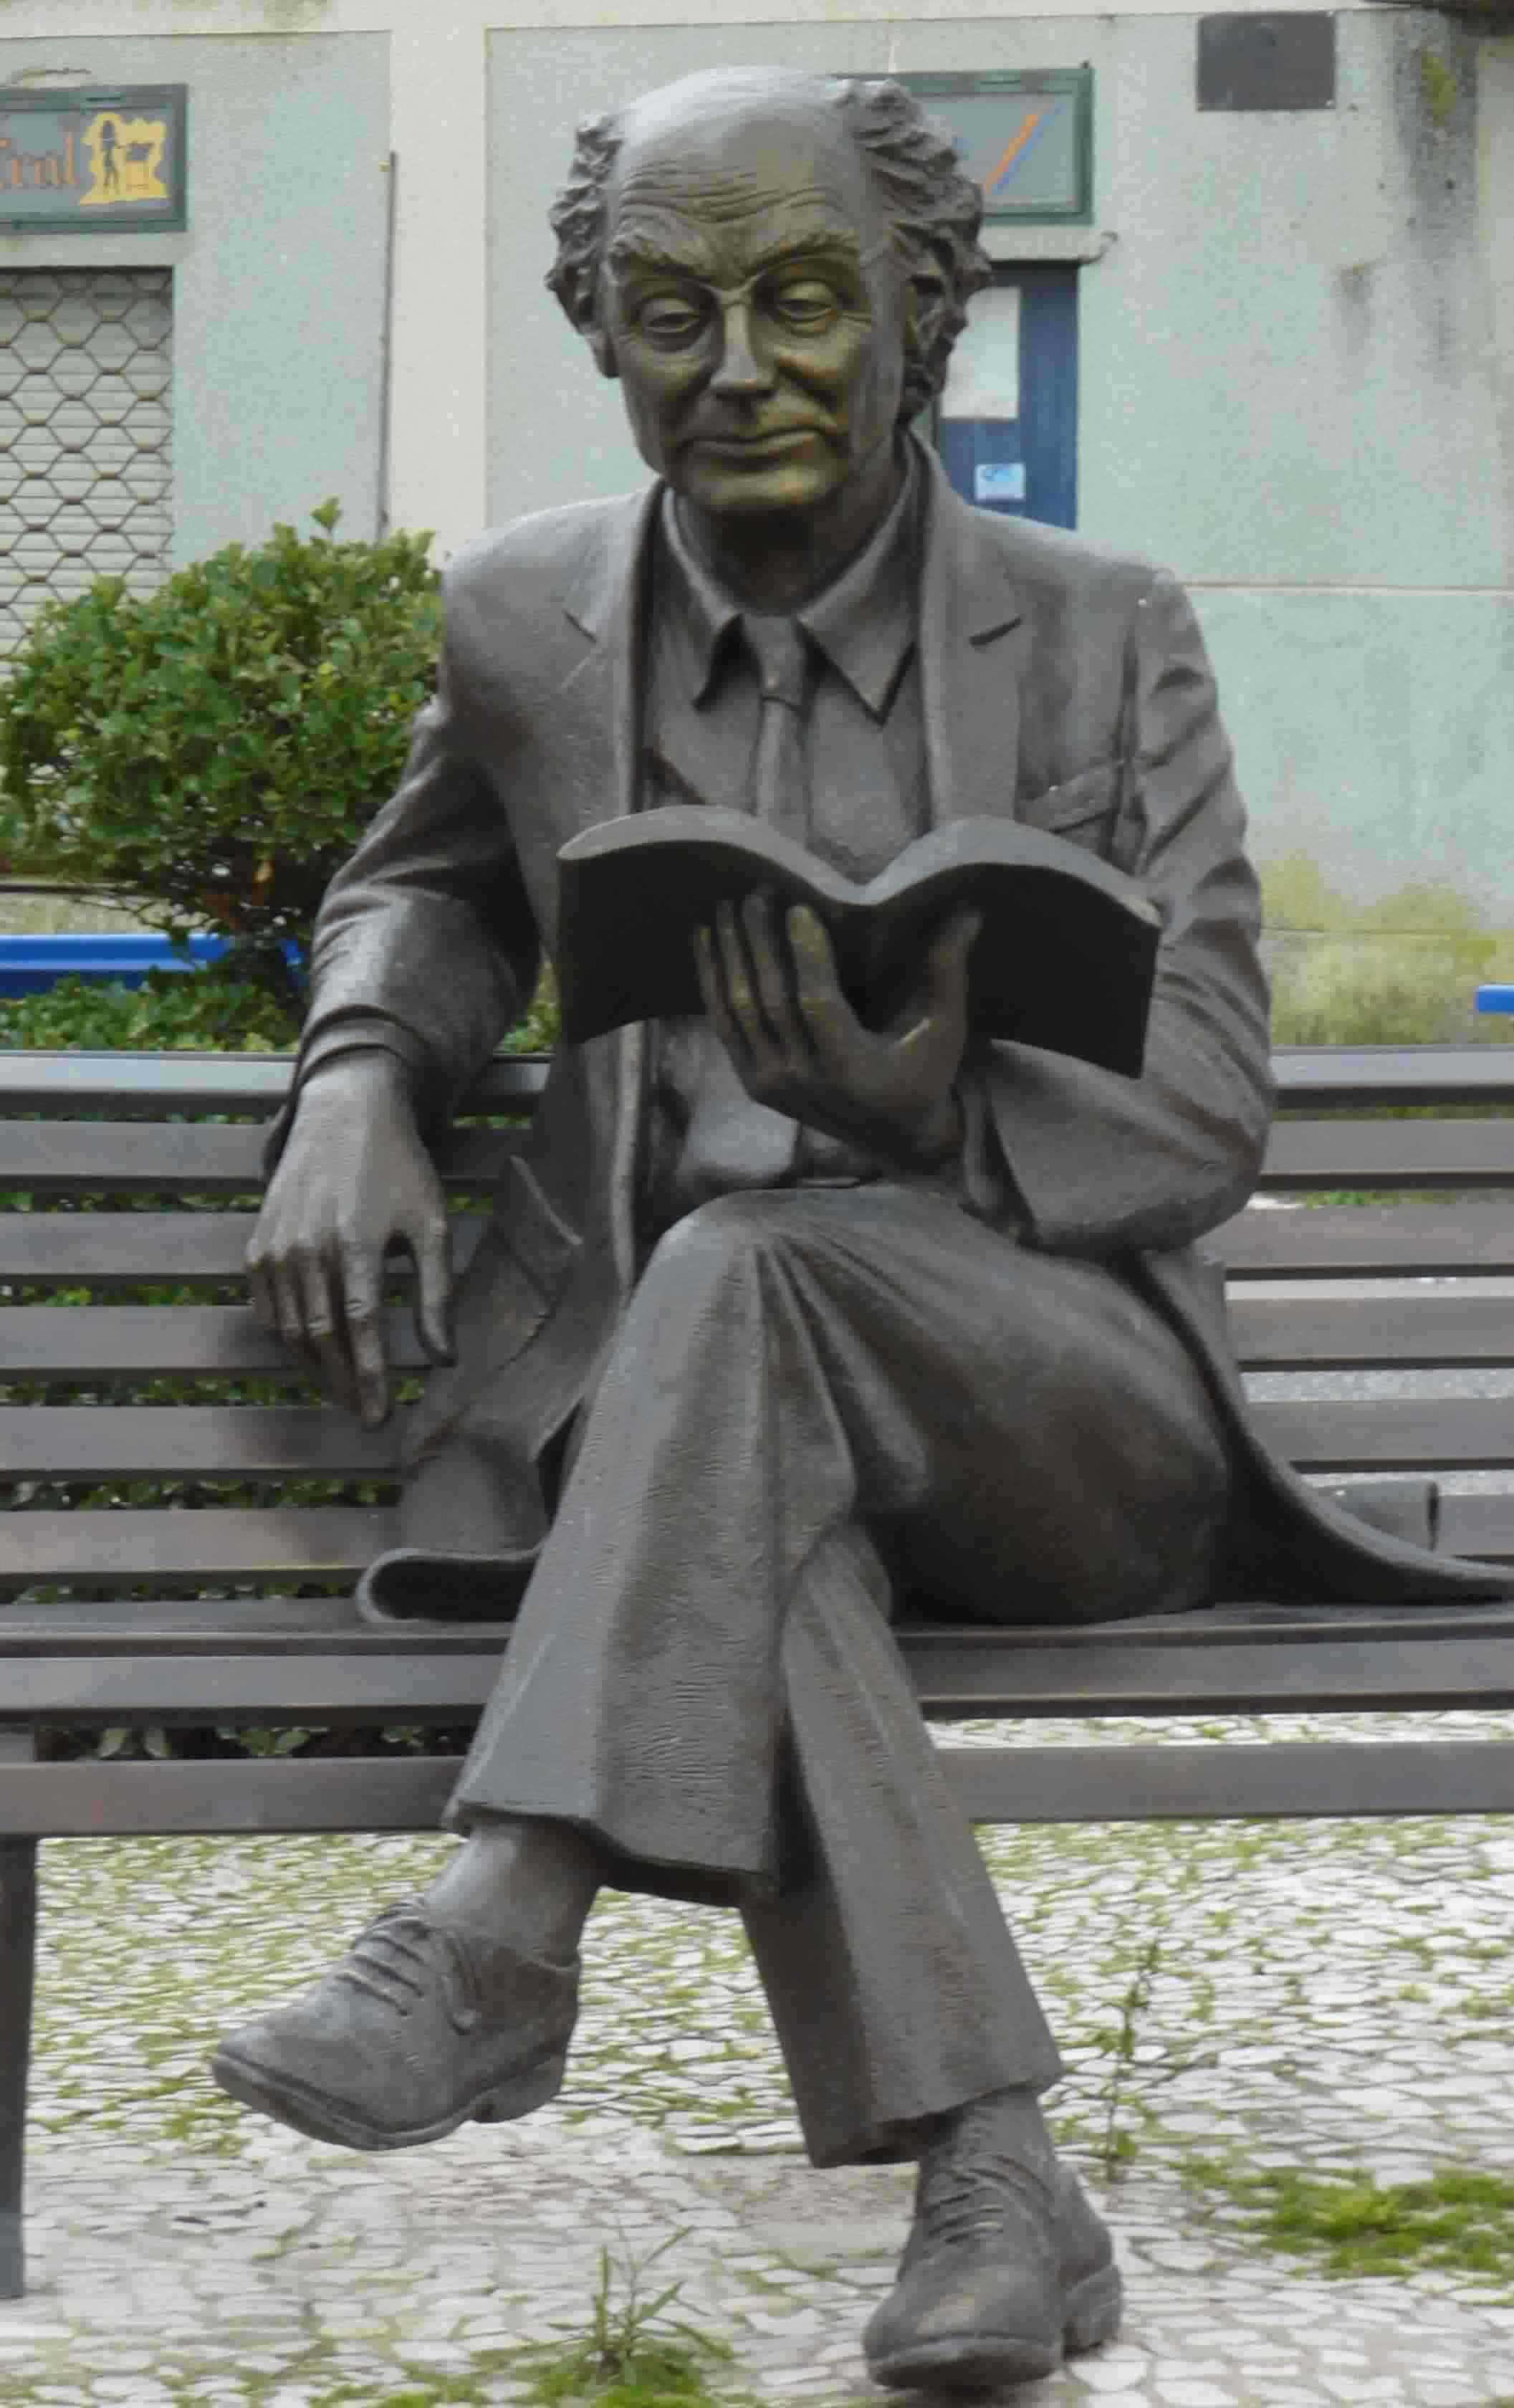 Sculpture of José Saramago in Azinhaga